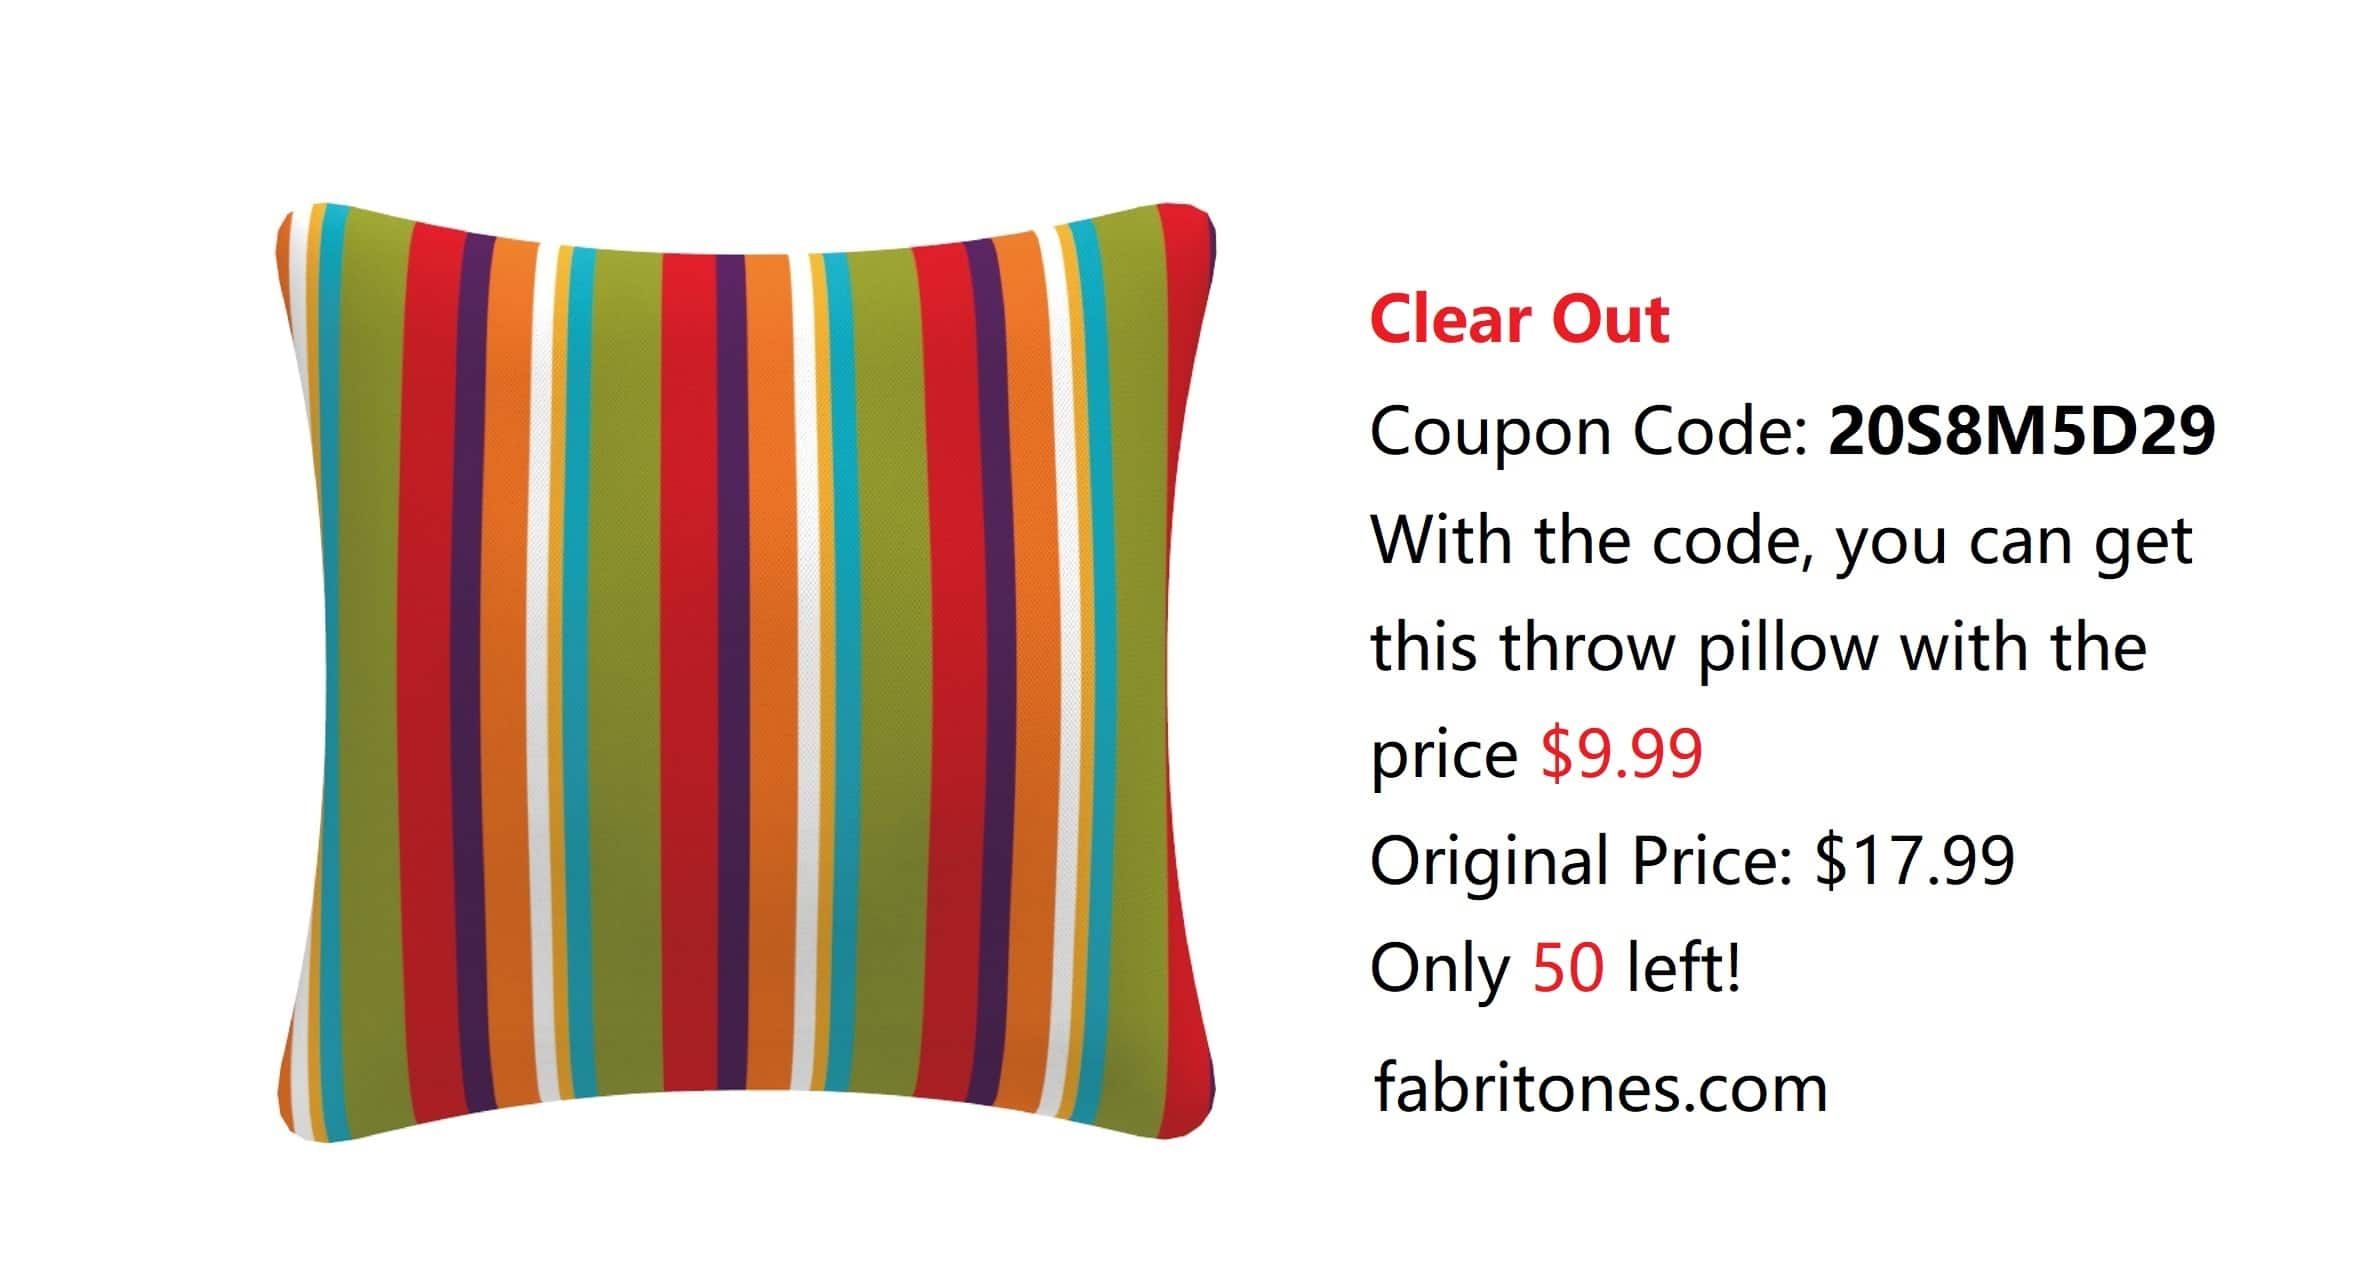 Outdoor Throw Pillow 45% off, US Free Shipping $9.99